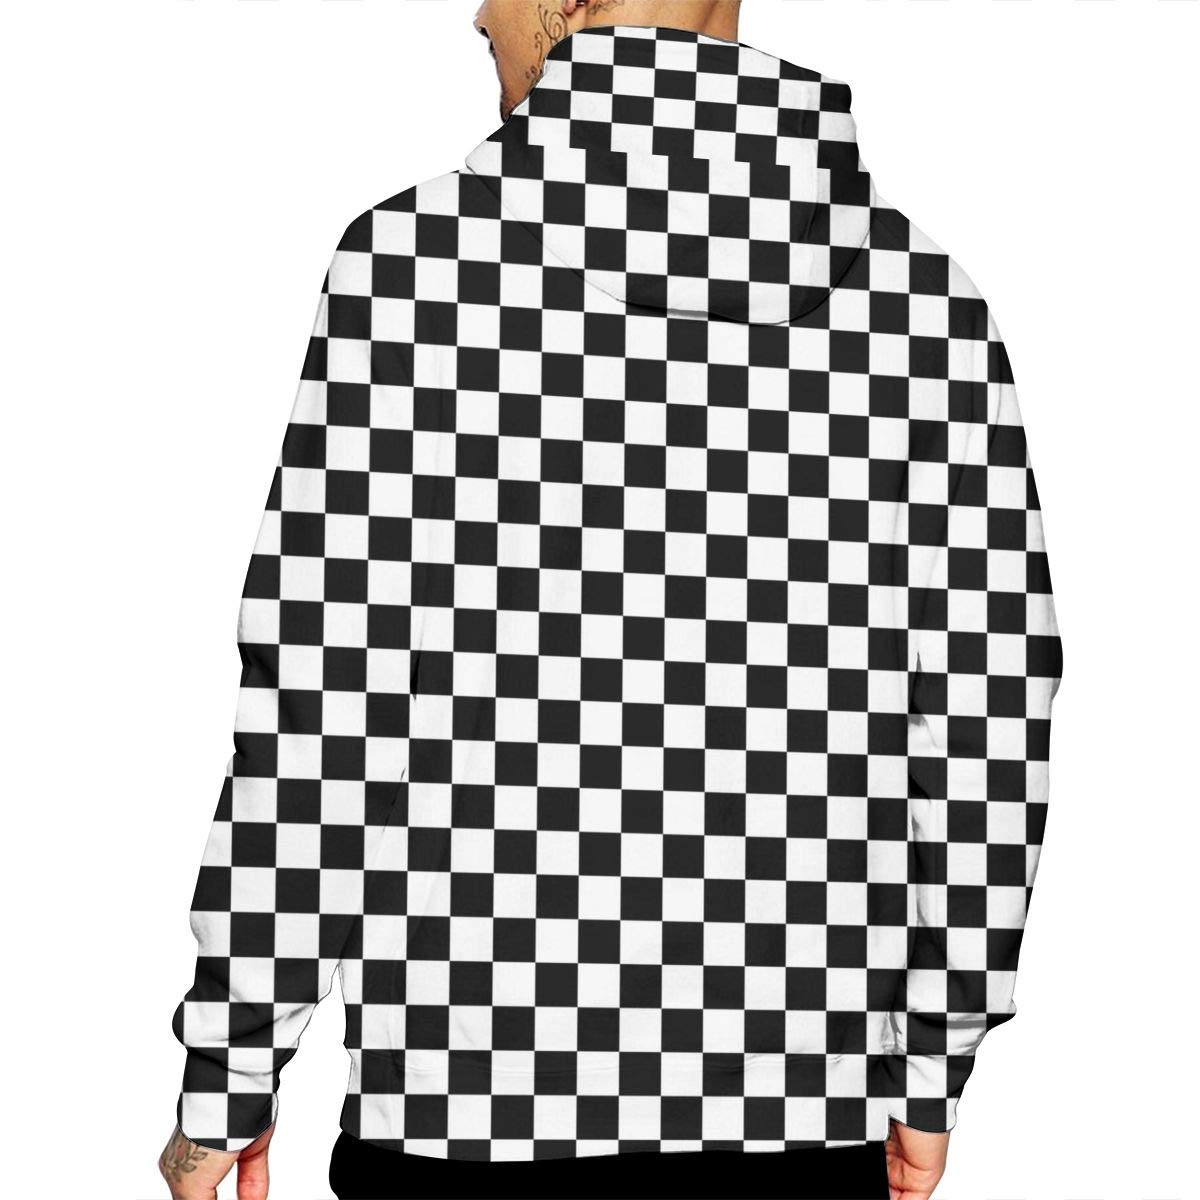 Black Checkered T-Shirt Hooded with A Pocket Rope Hat Customization Fashion Novelty 3D Mens